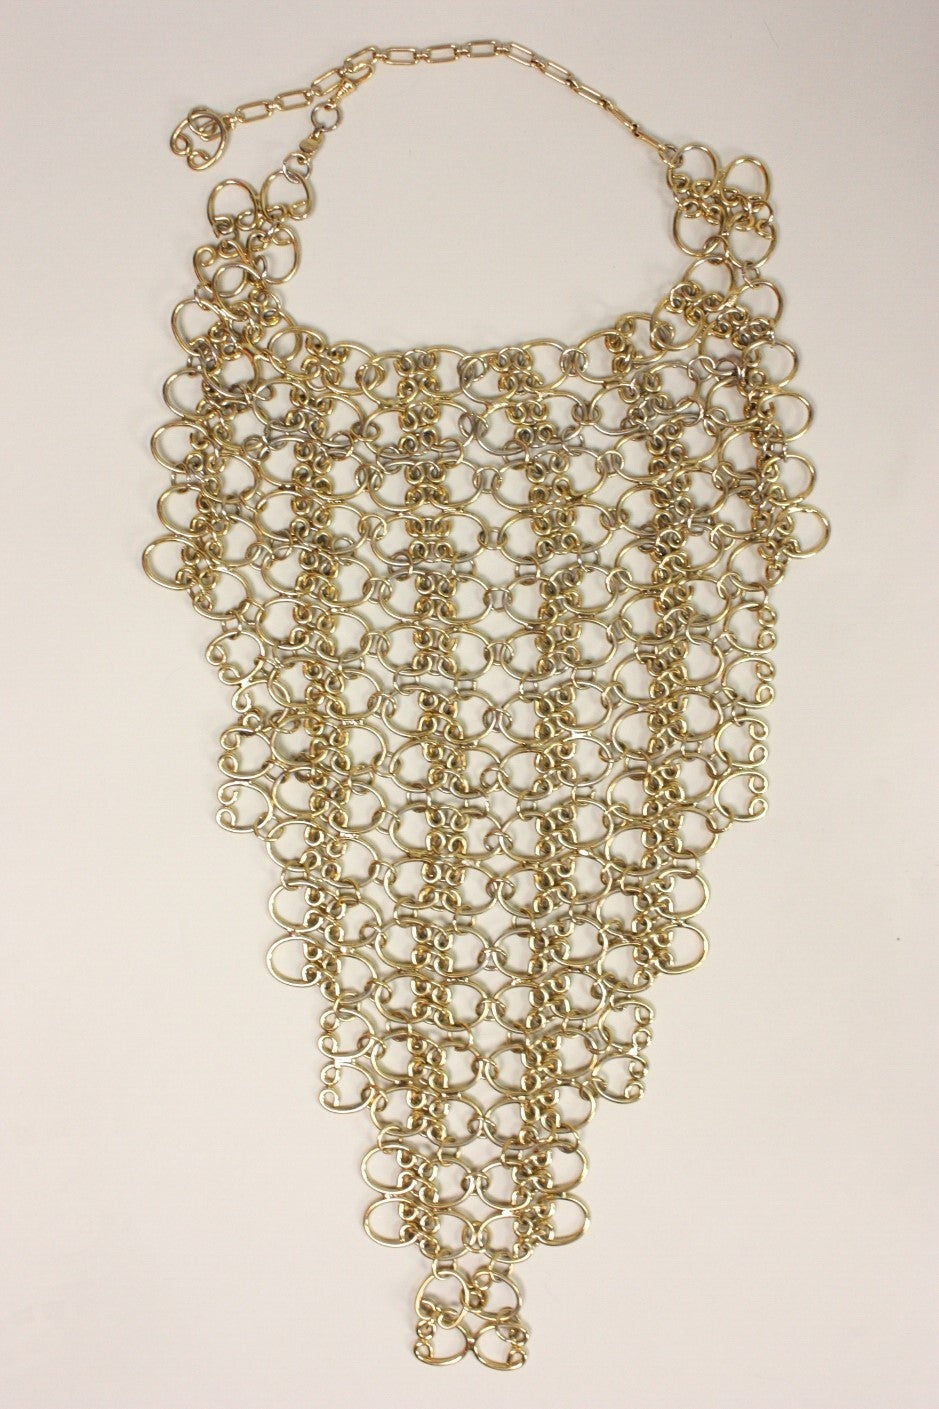 1960's Pauline Trigere Massive Statement Bib Necklace 2